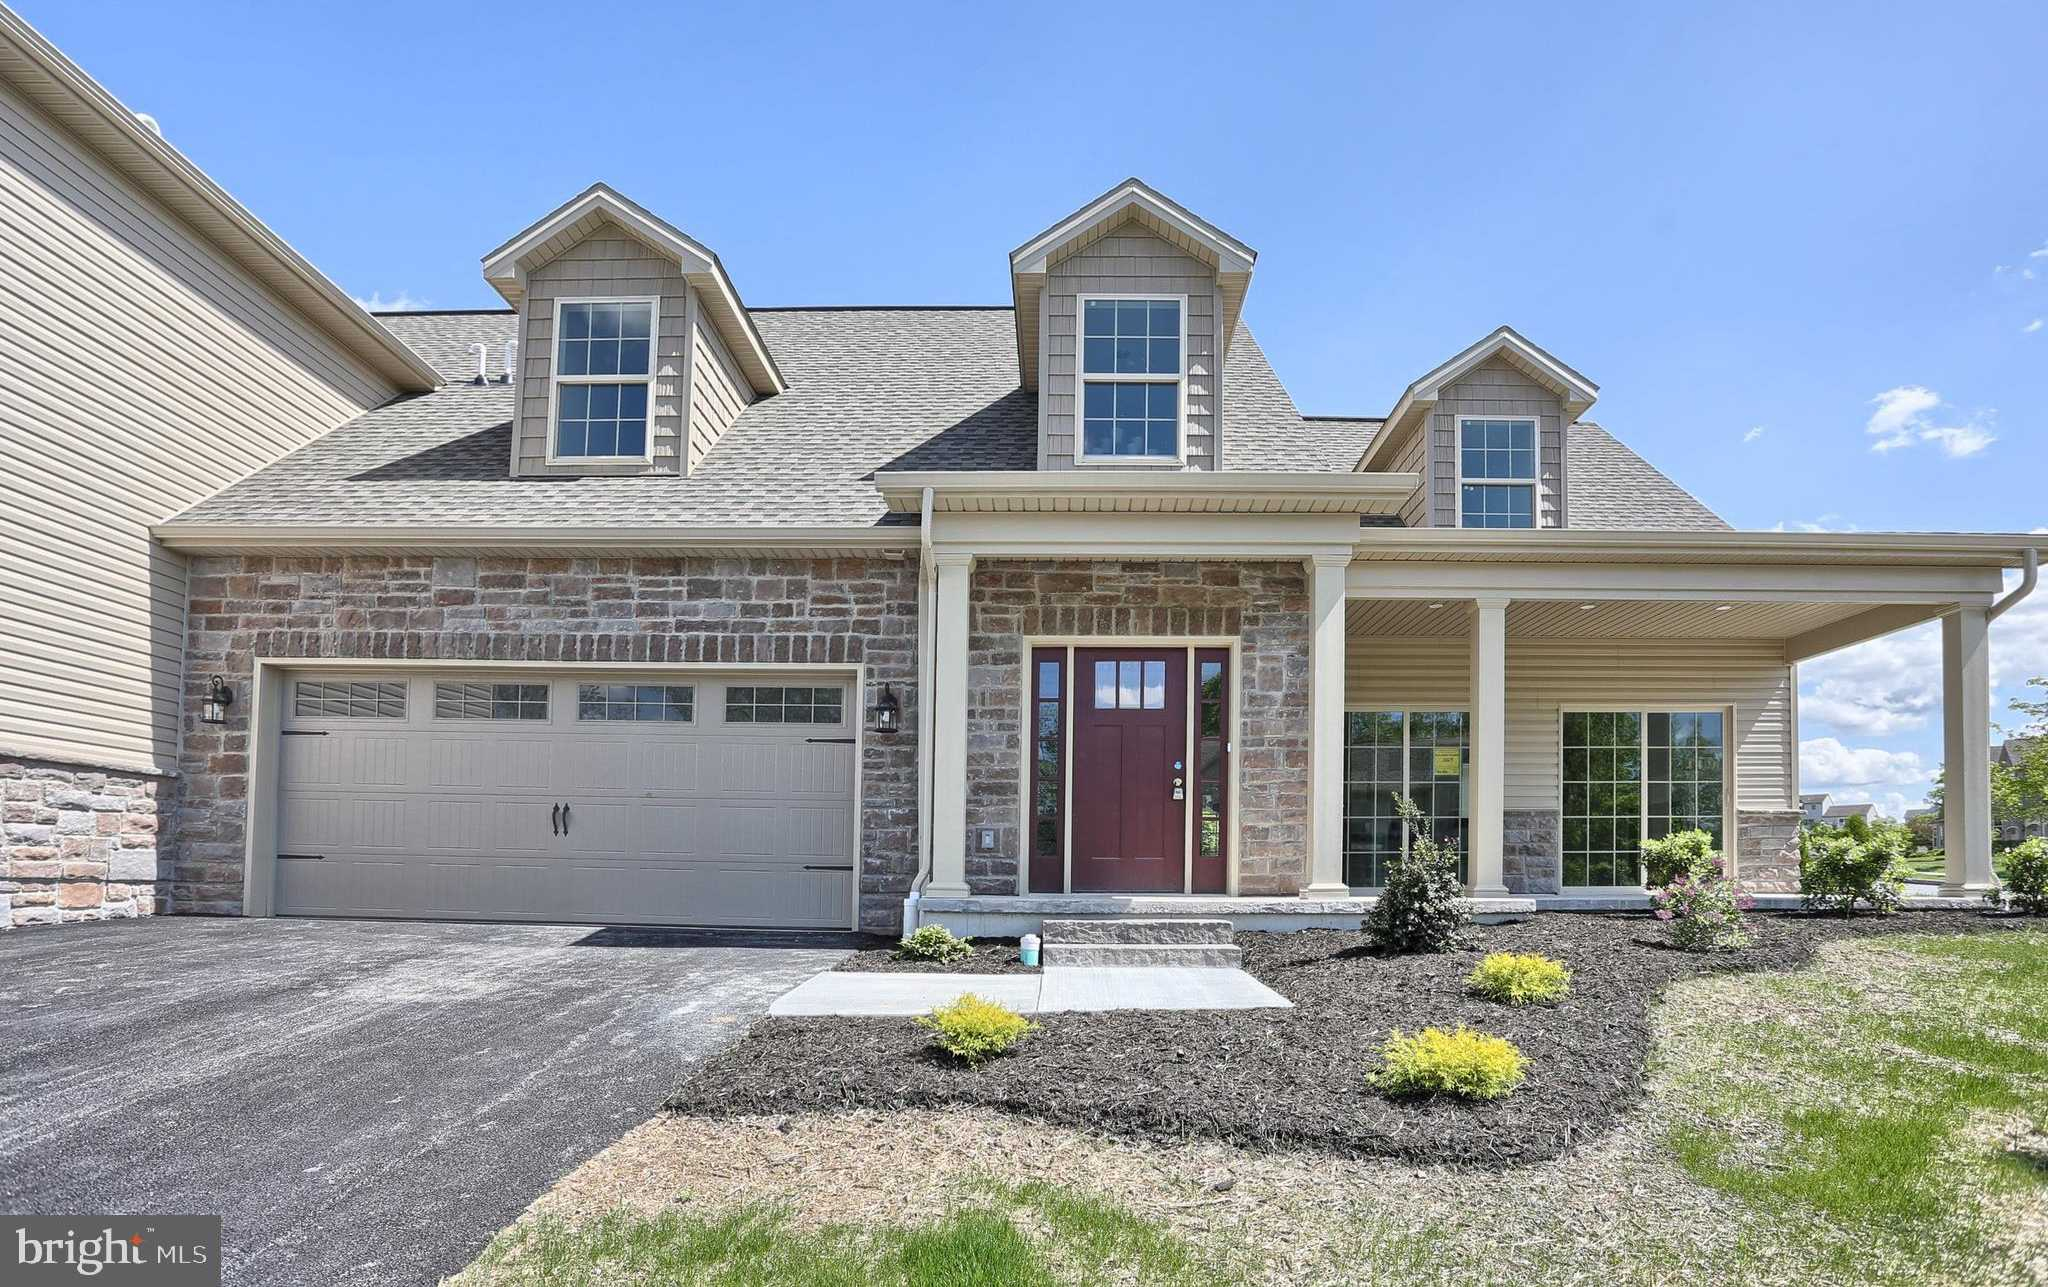 $289,900 - 3Br/3Ba -  for Sale in Village At North Ridge, Carlisle